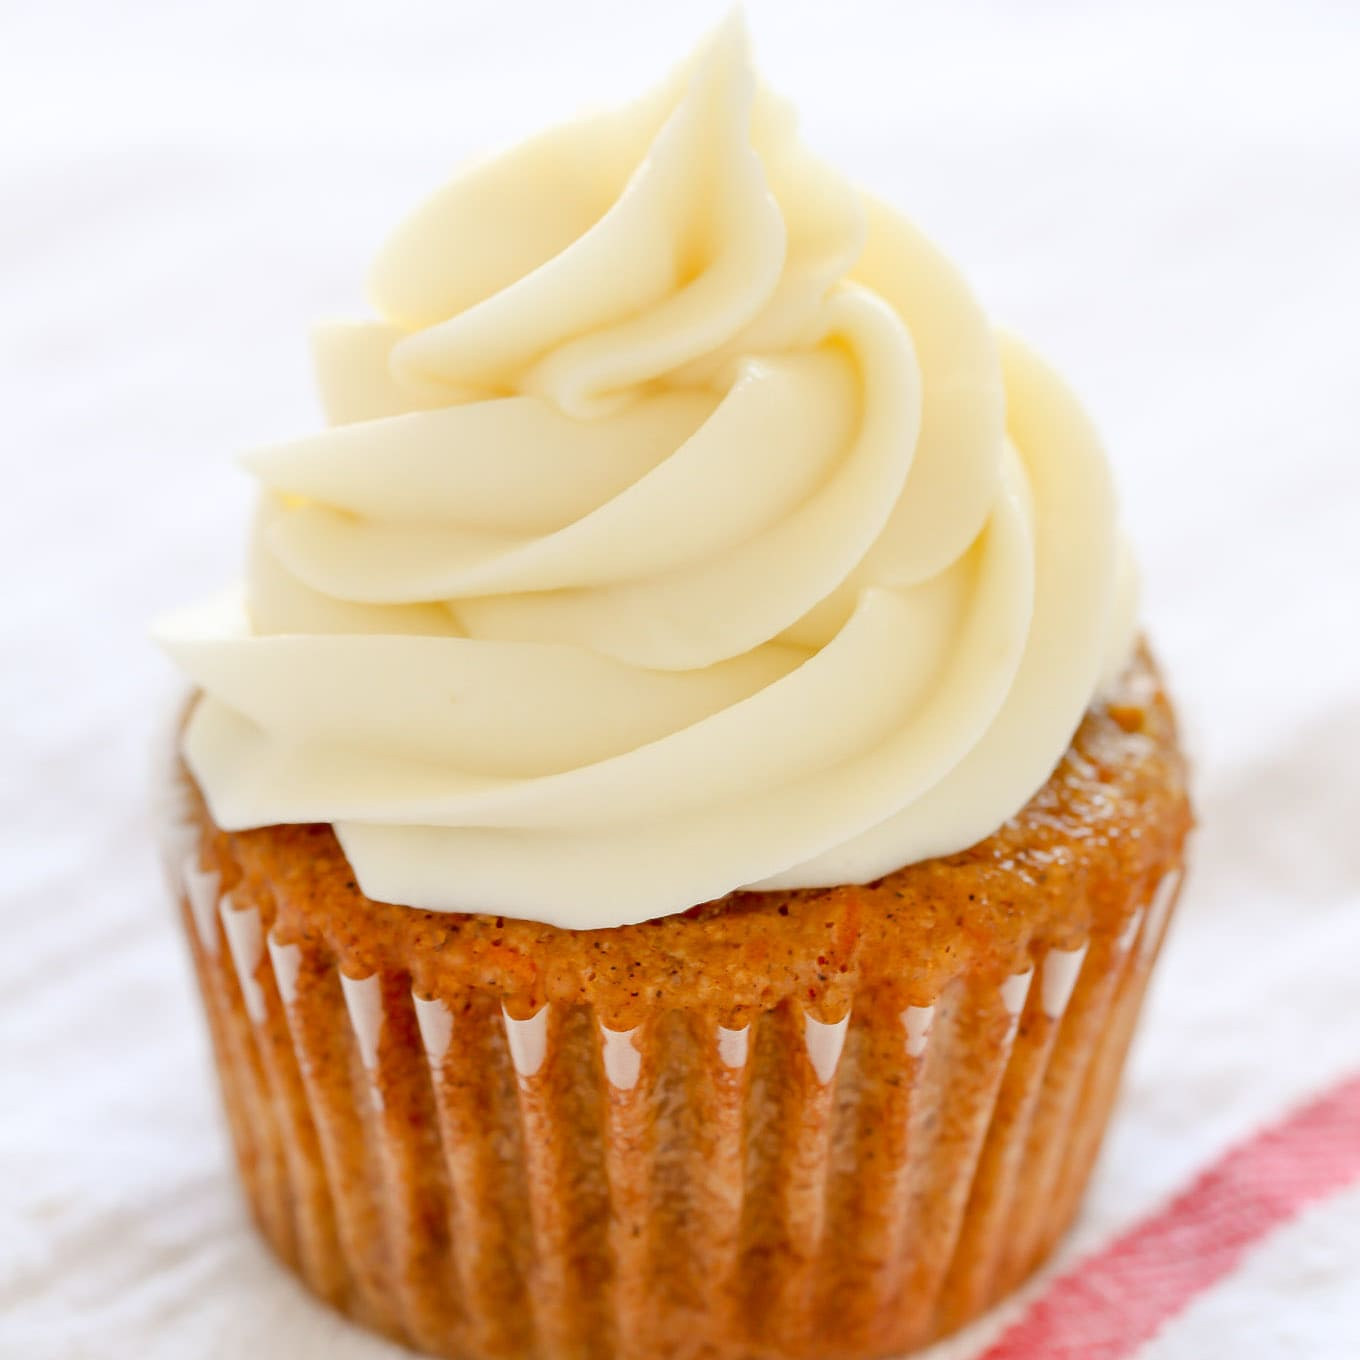 An easy recipe for cream cheese frosting made with four simple ingredients and ready in just a few minutes. This frosting pipes perfectly and can be used on so many different desserts!